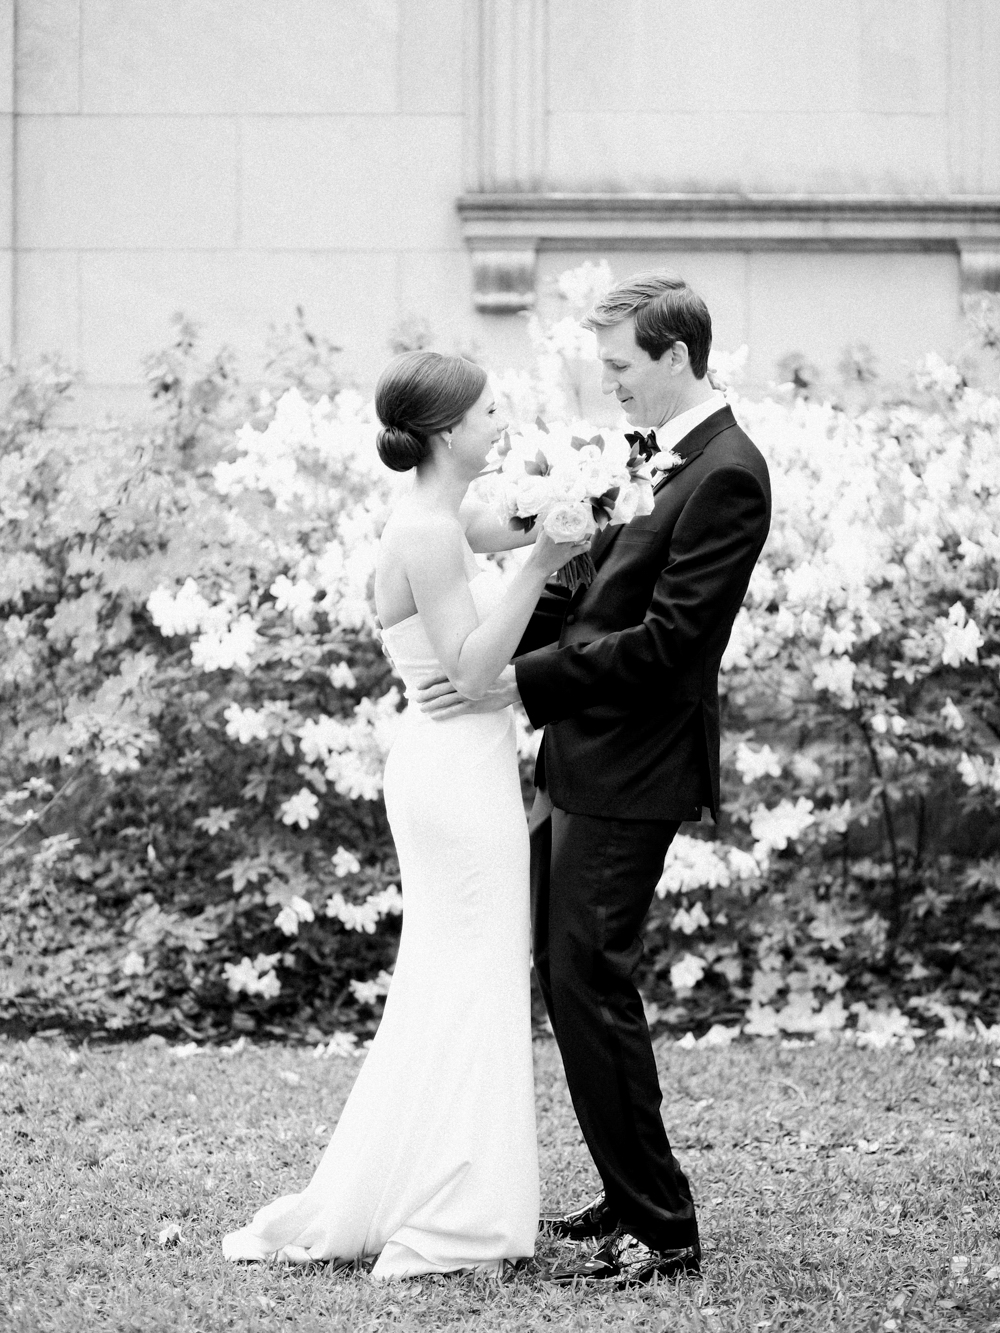 benefits of a first look_wedding photography_wedding photographer_film wedding photographer_Christine Gosch_www.christinegosch.com_Houston, Texas wedding photographer_ Houston, Texas-8.jpg